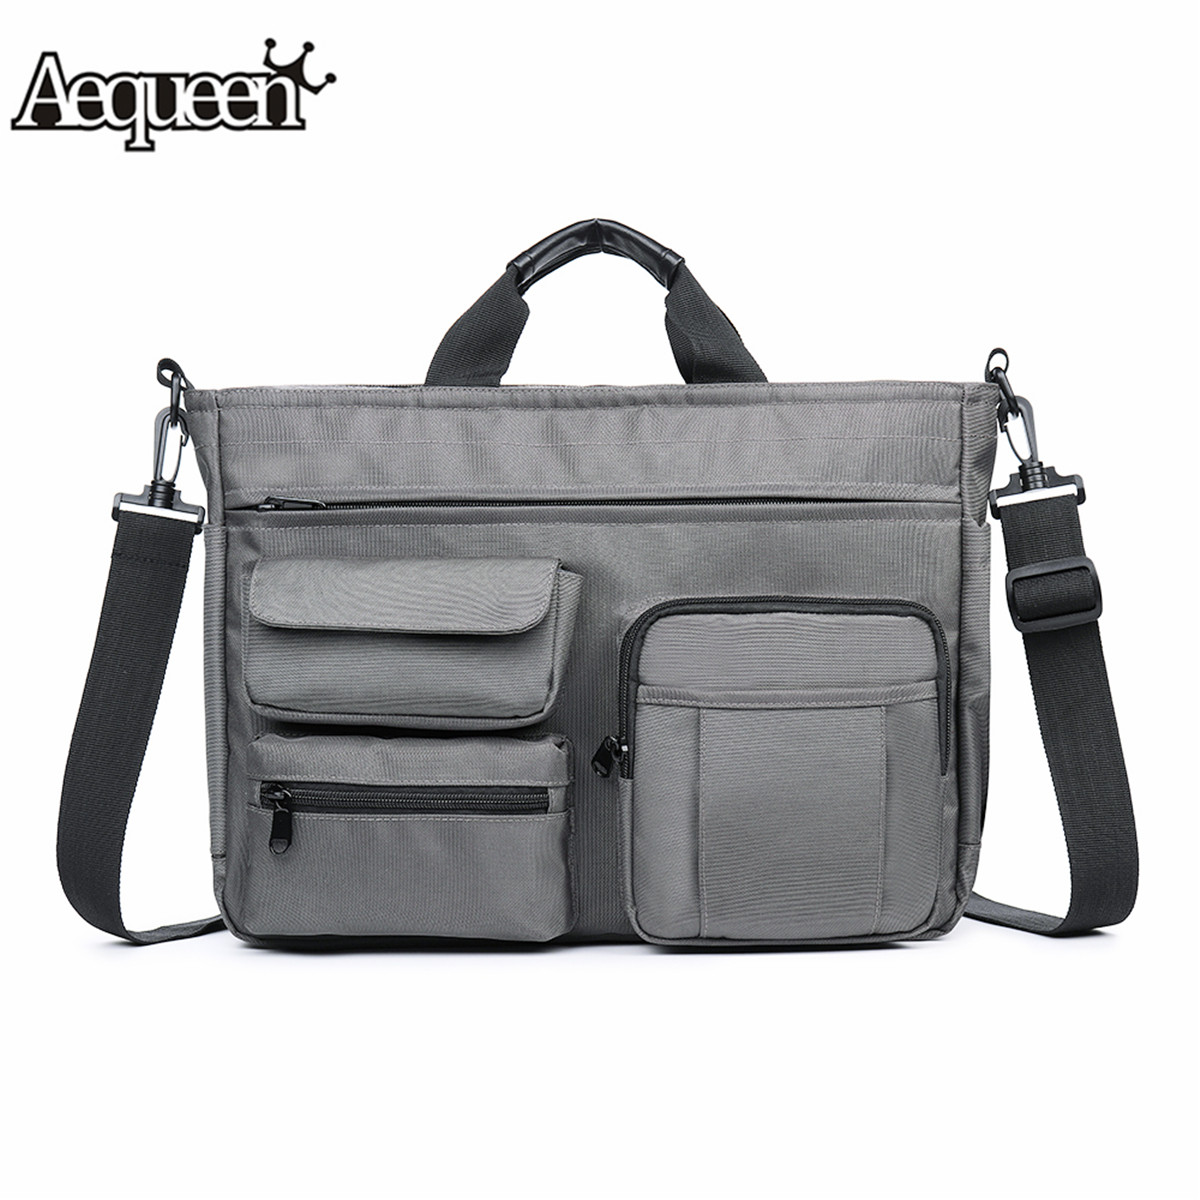 Business 14 Inch Laptop Briefcases For Men Women Waterproof Large Shoulder Crossbody Bags Male Travel Office Tote Handbag